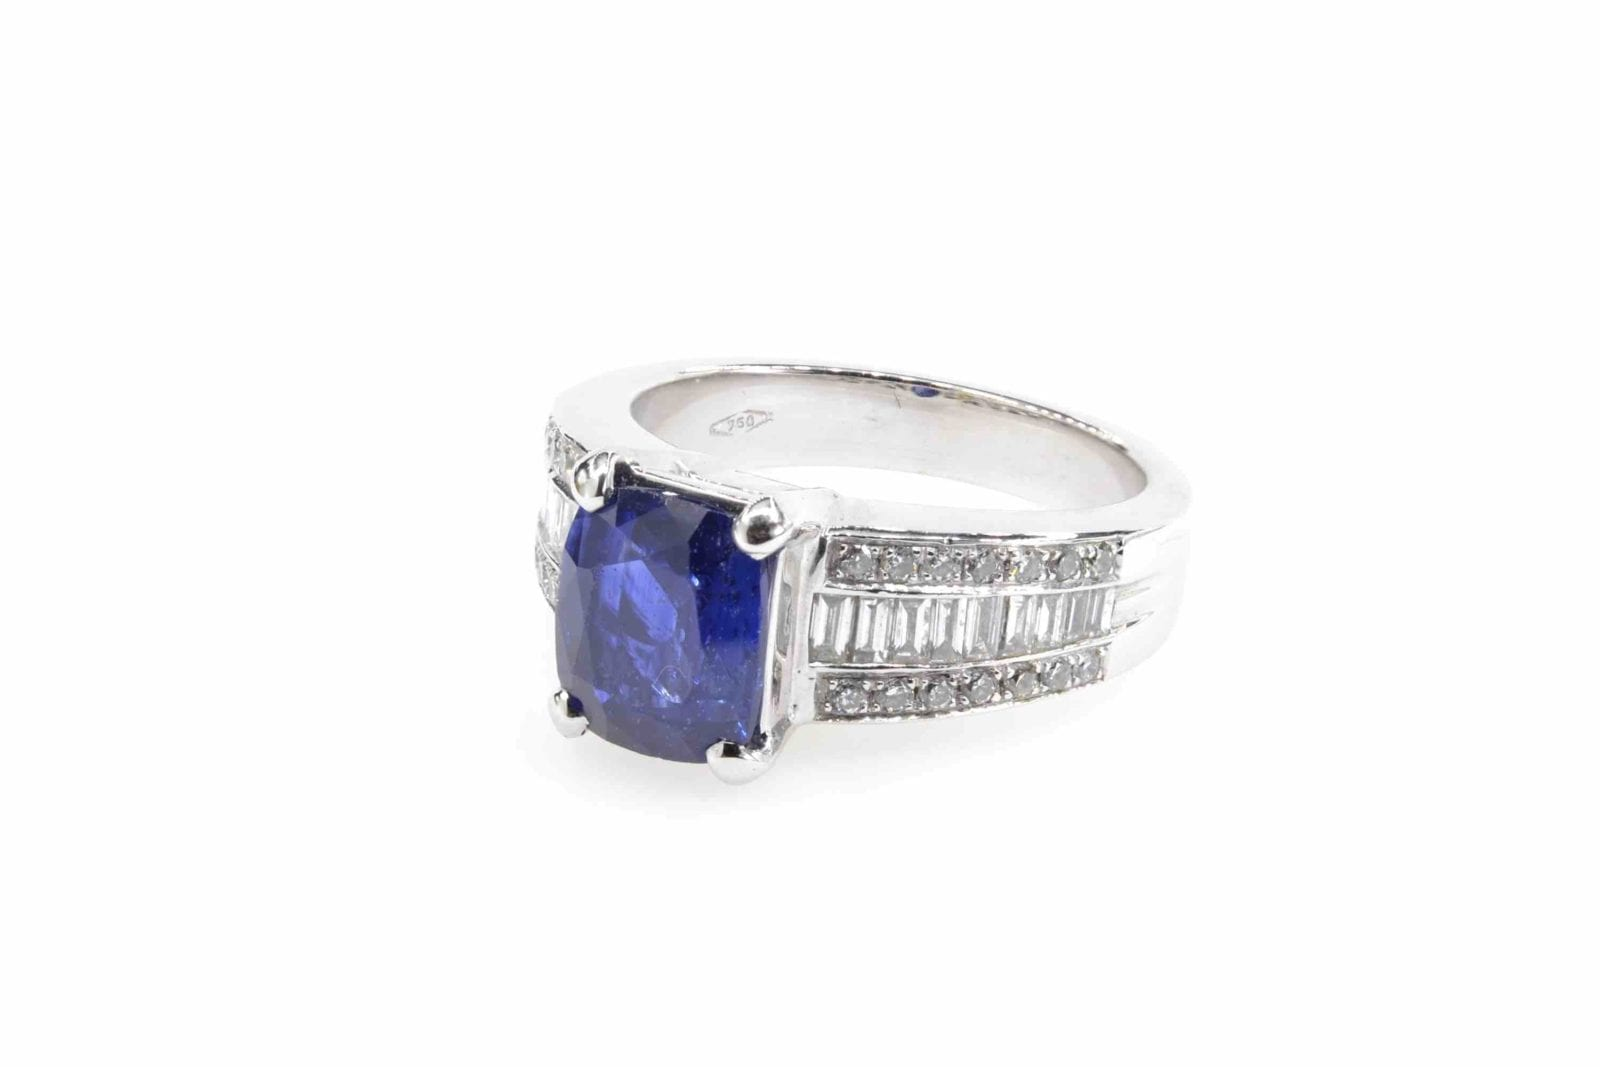 Bague saphir et diamants baguette en or blanc 18k